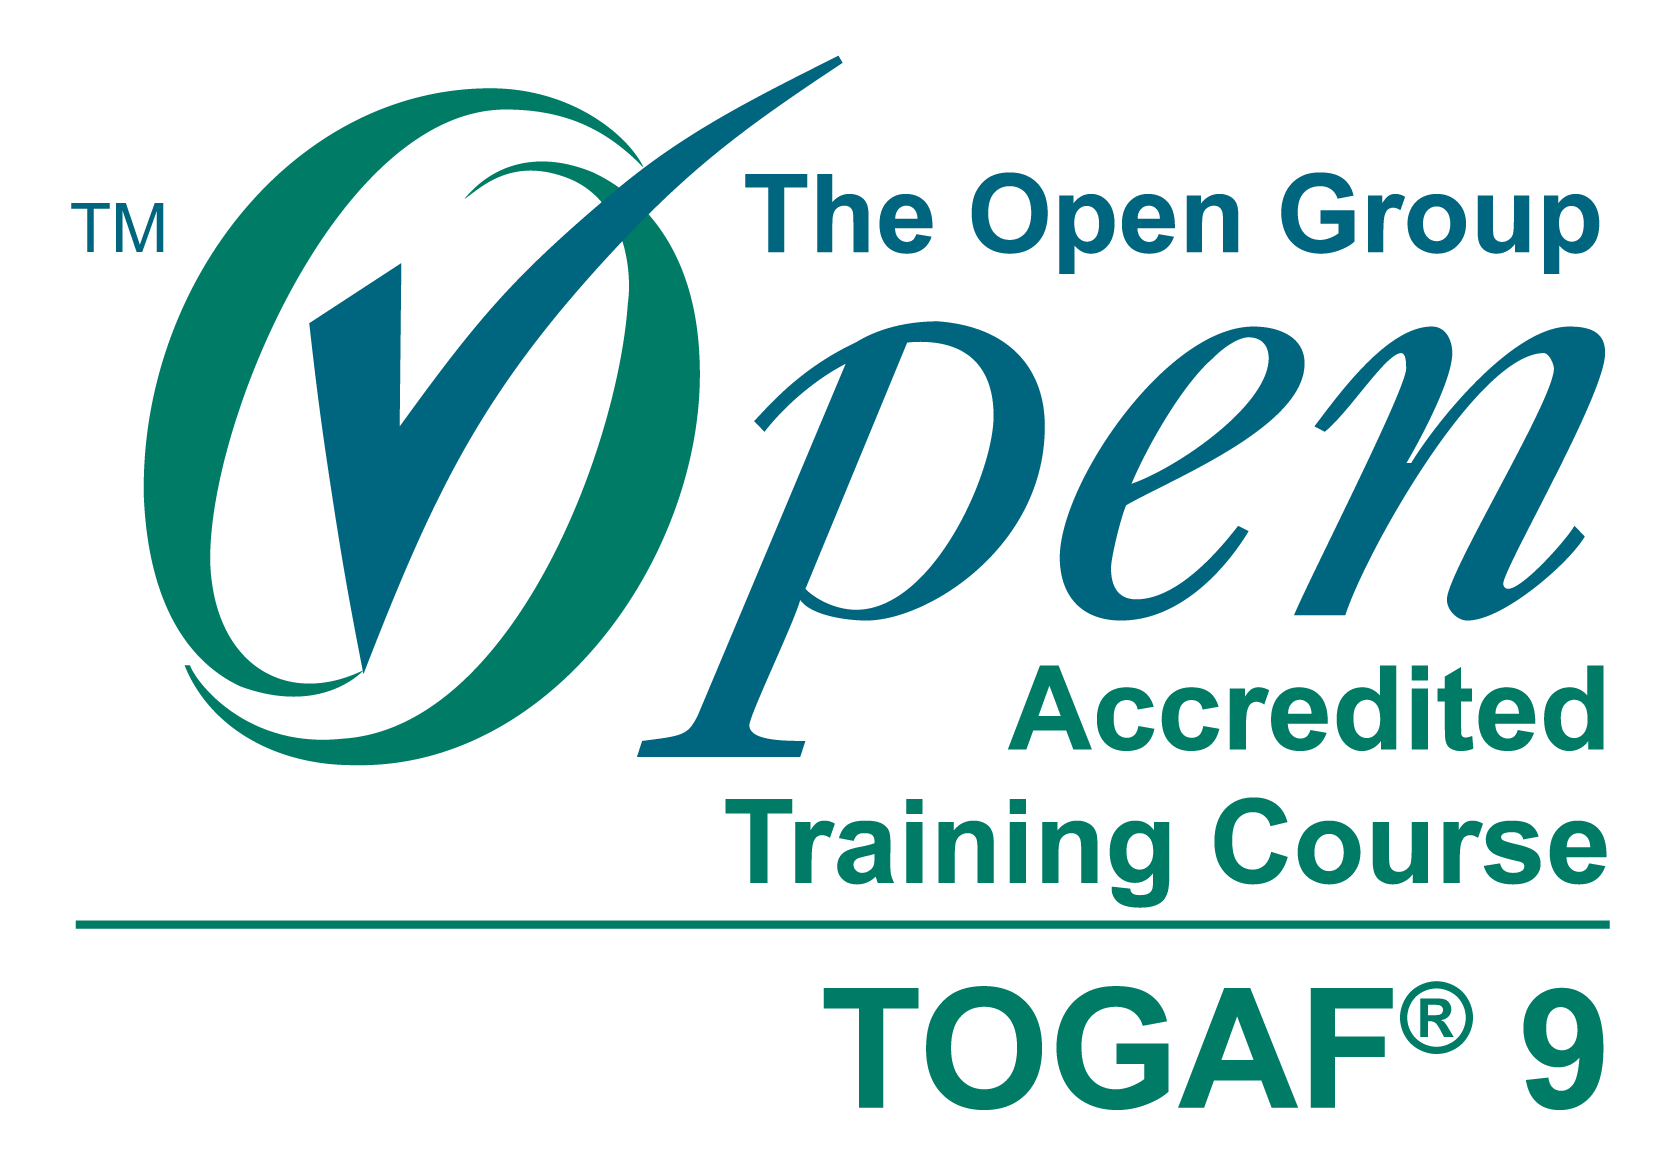 TOGAF - Certification Training & IT Courses with Guaranteed ResultsVendor Logo